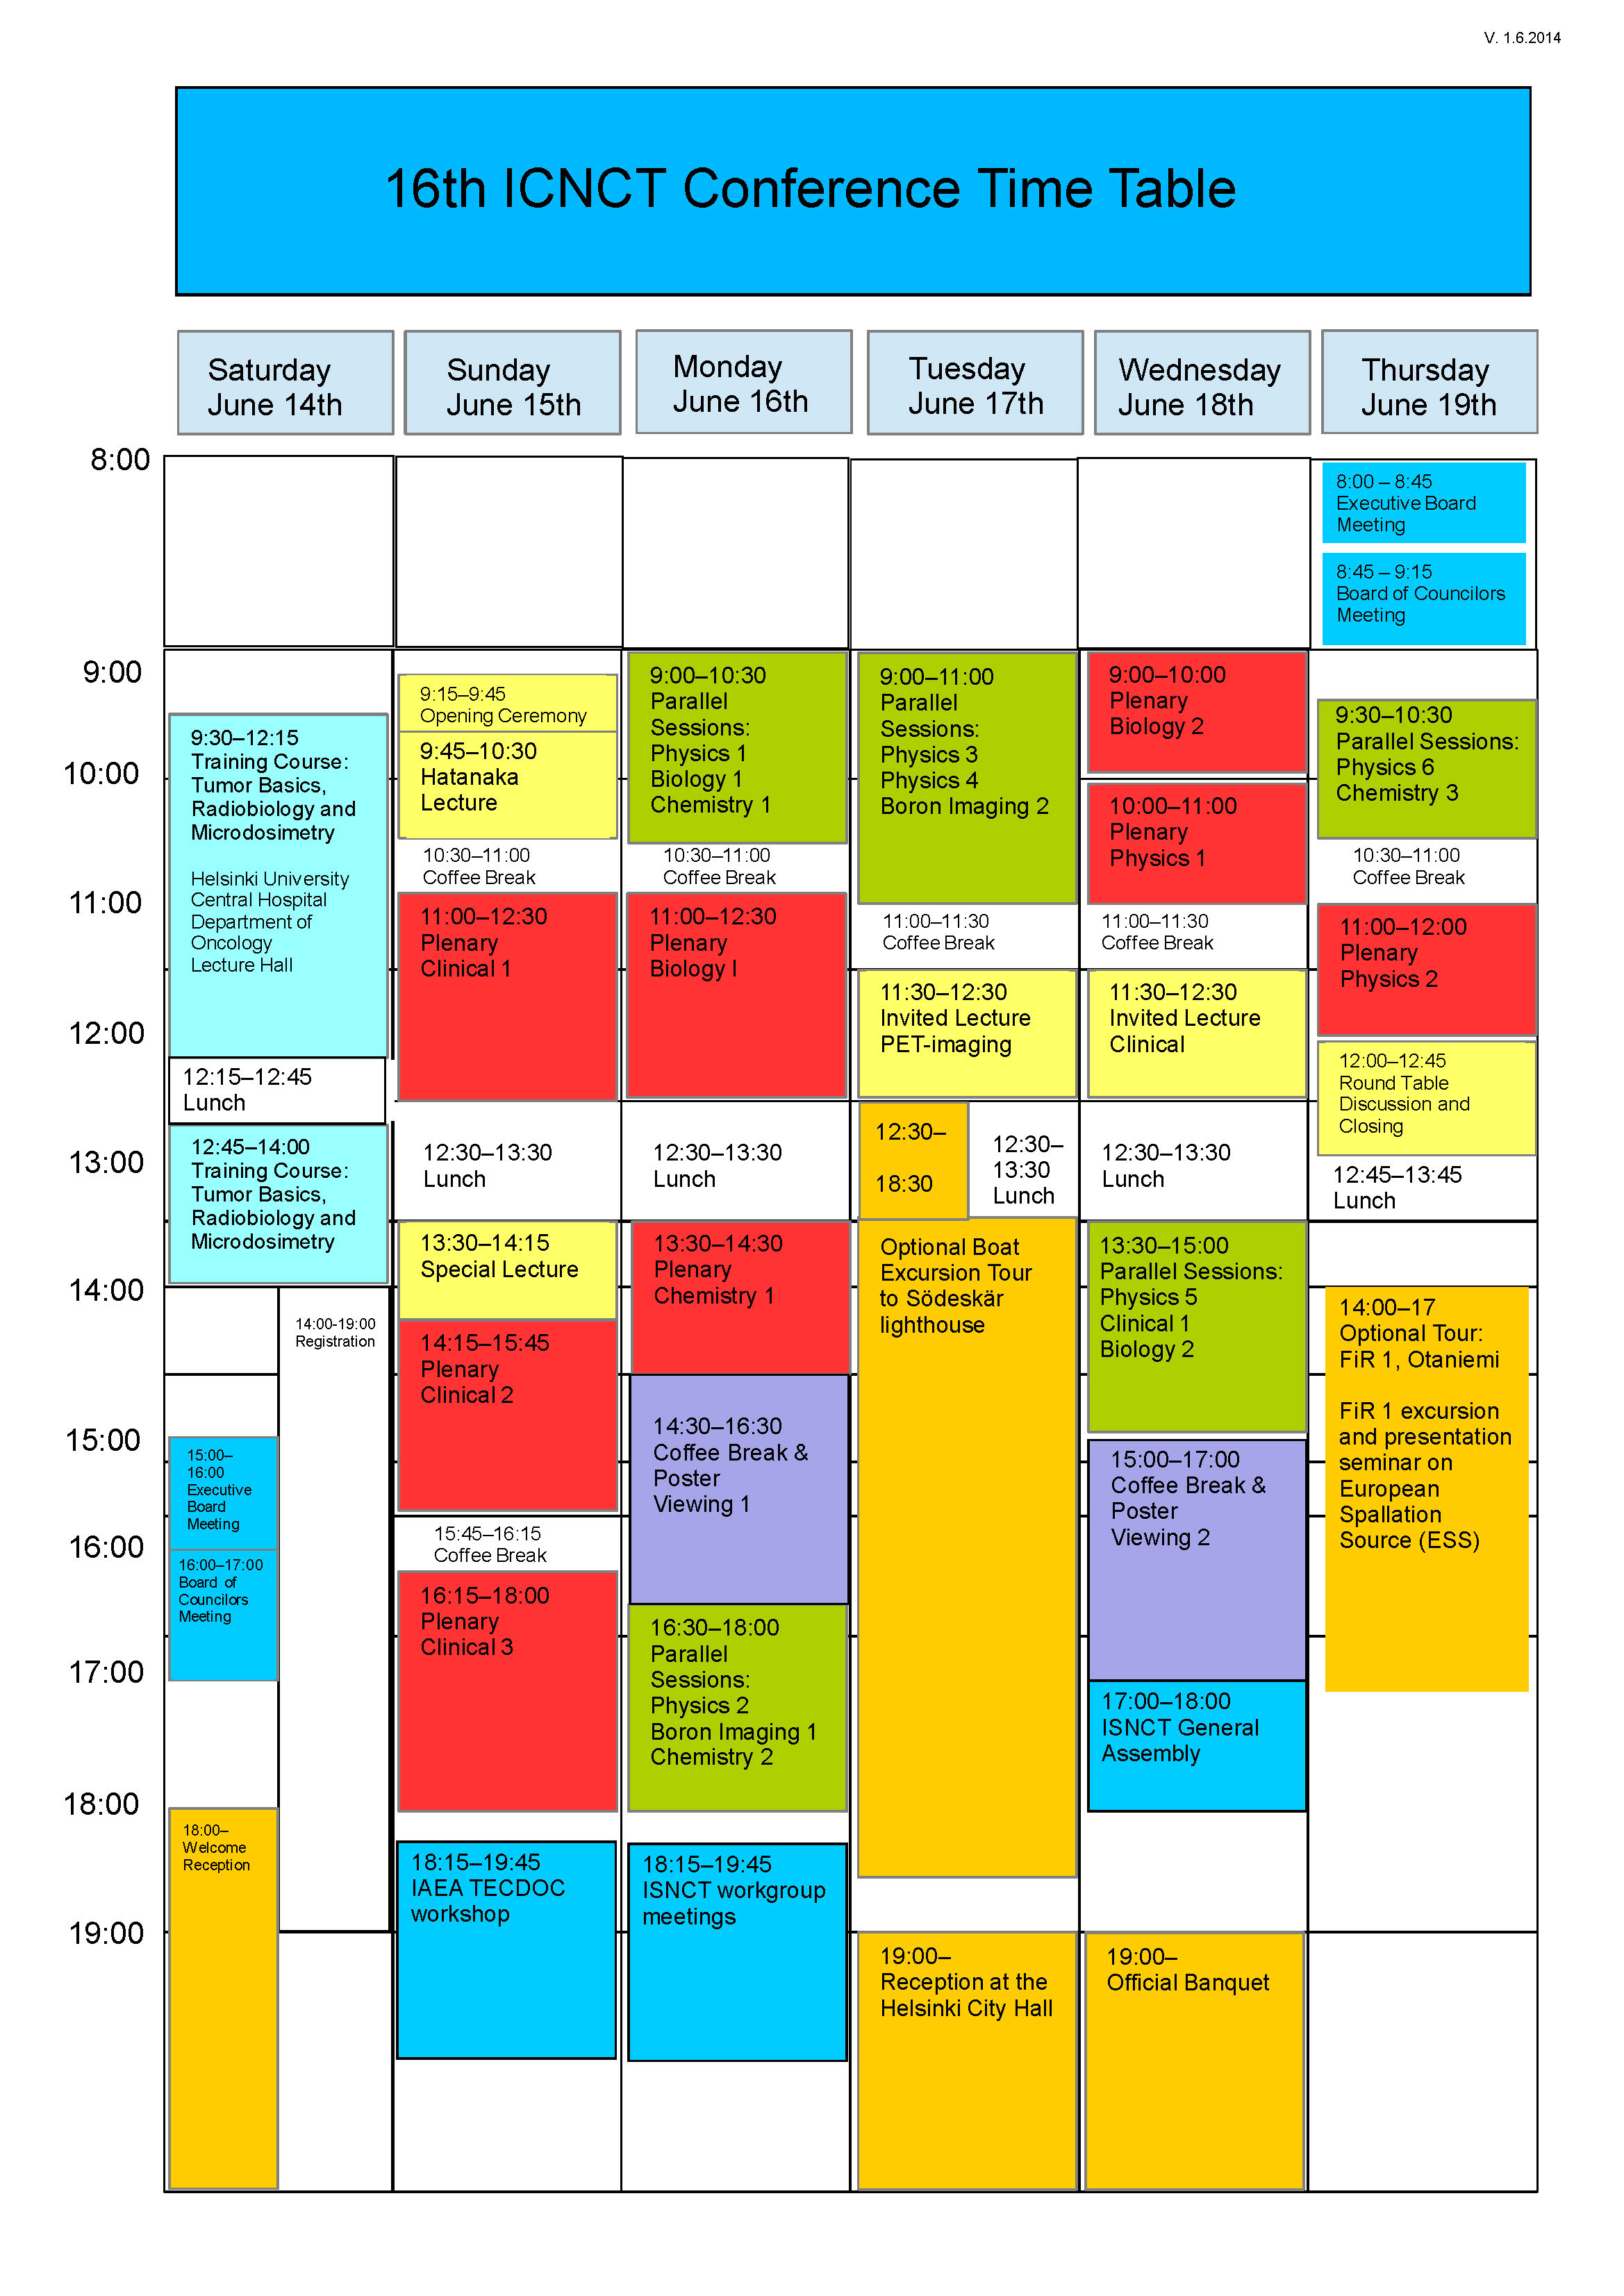 ICNCT-16 Timetable Final V1.6.2014